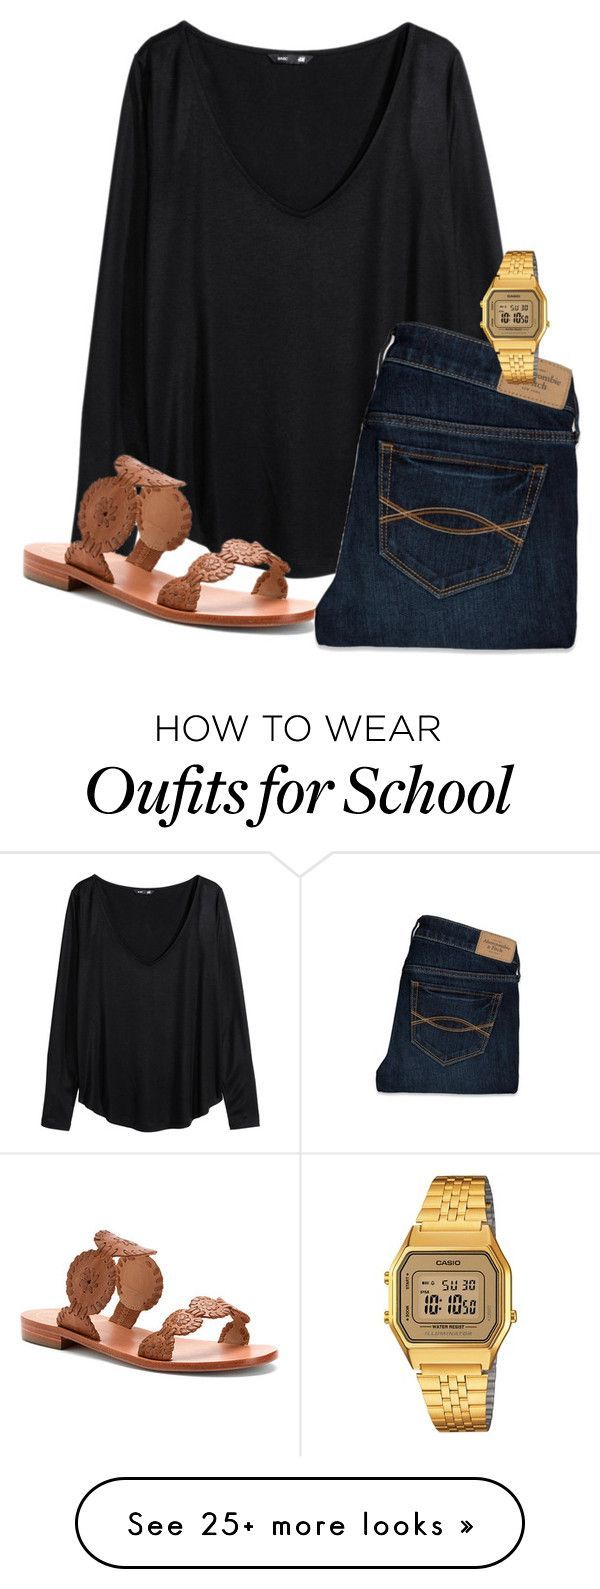 """""""One before I leave for school"""" by mmapp on Polyvore featuring H&M, Jack Rogers, Abercrombie & Fitch and Casio"""